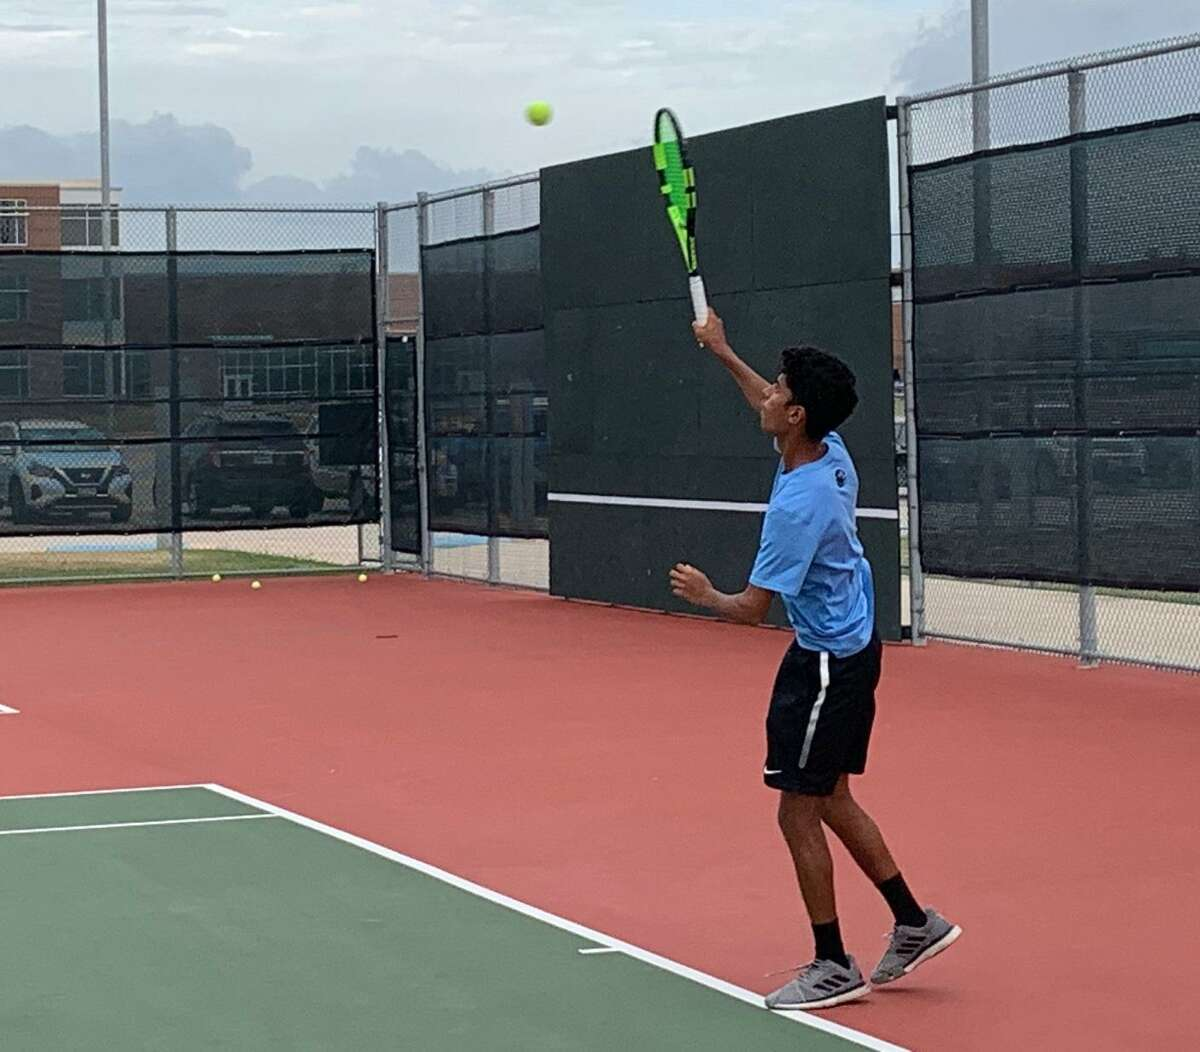 Paetow's Omar Maisur serves during a doubles match against Brenham in the season opener for both teams Sept. 8 at Paetow High School. Maisur and teammate Jonathan Mejia won 6-2, 6-4.